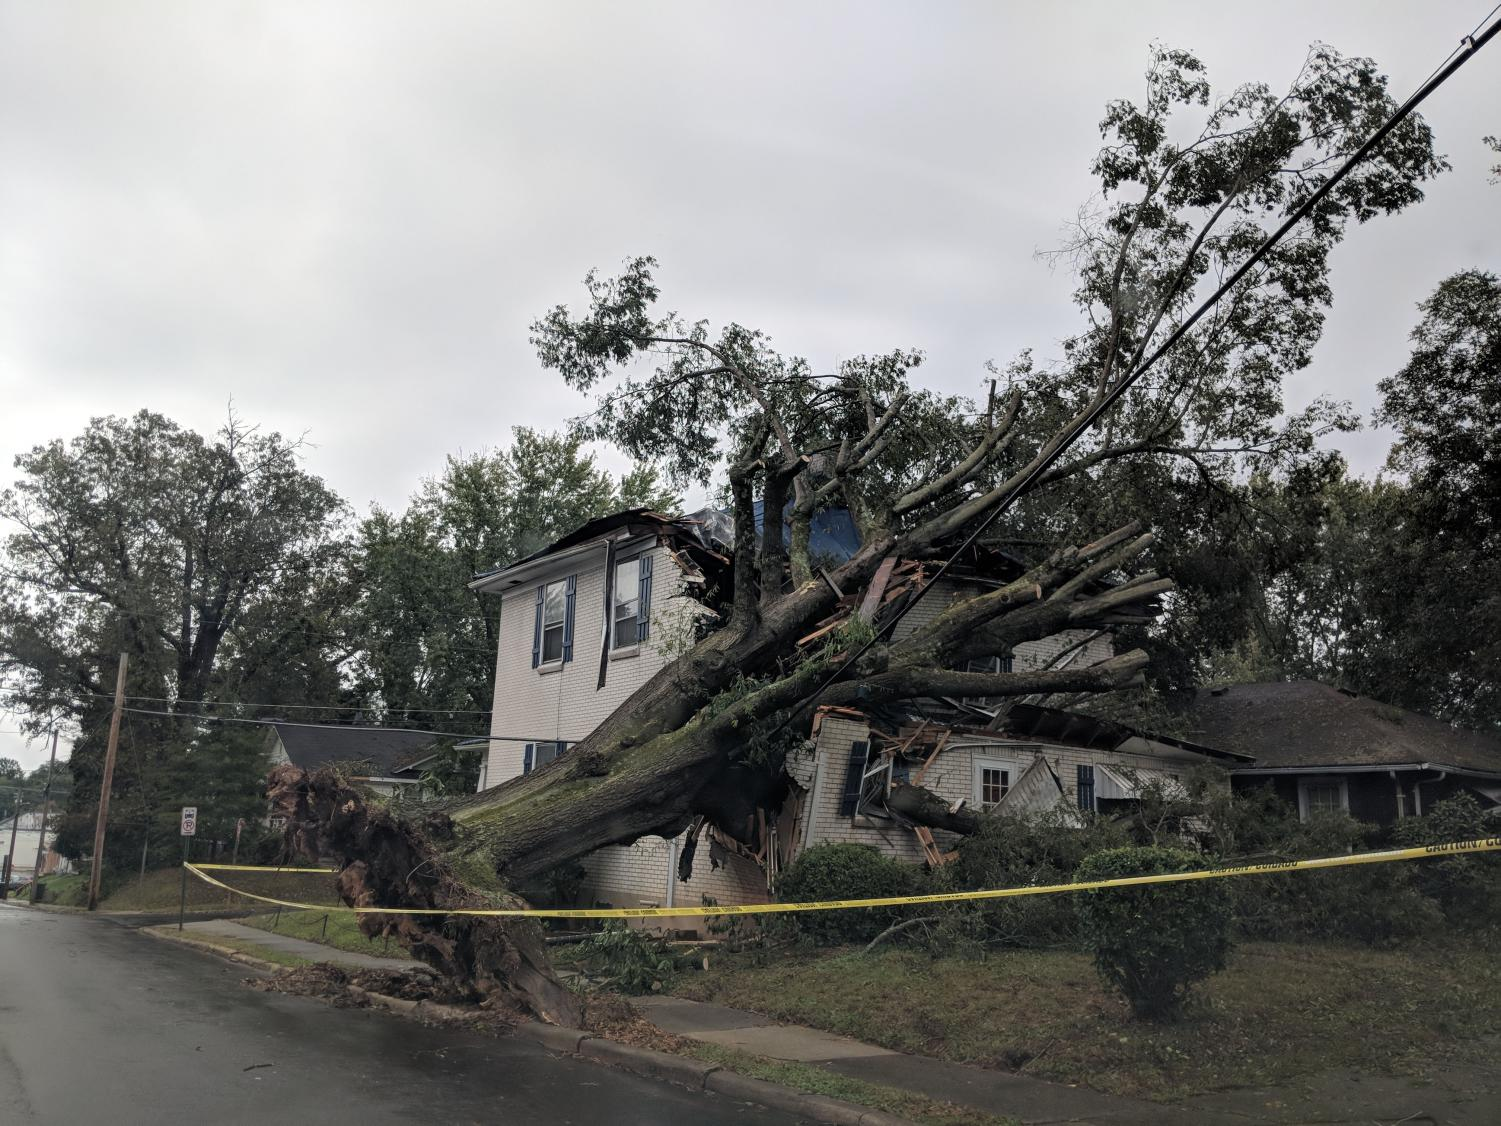 A house near Ballou Park is crushed by a fallen tree in the aftermath of Hurricane Michael. Businesses and homes were overcome by water and harsh winds uprooted trees, destroying structures and power lines. More than 20,000 customers were without power the morning of Oct. 12 and numerous roads closed.